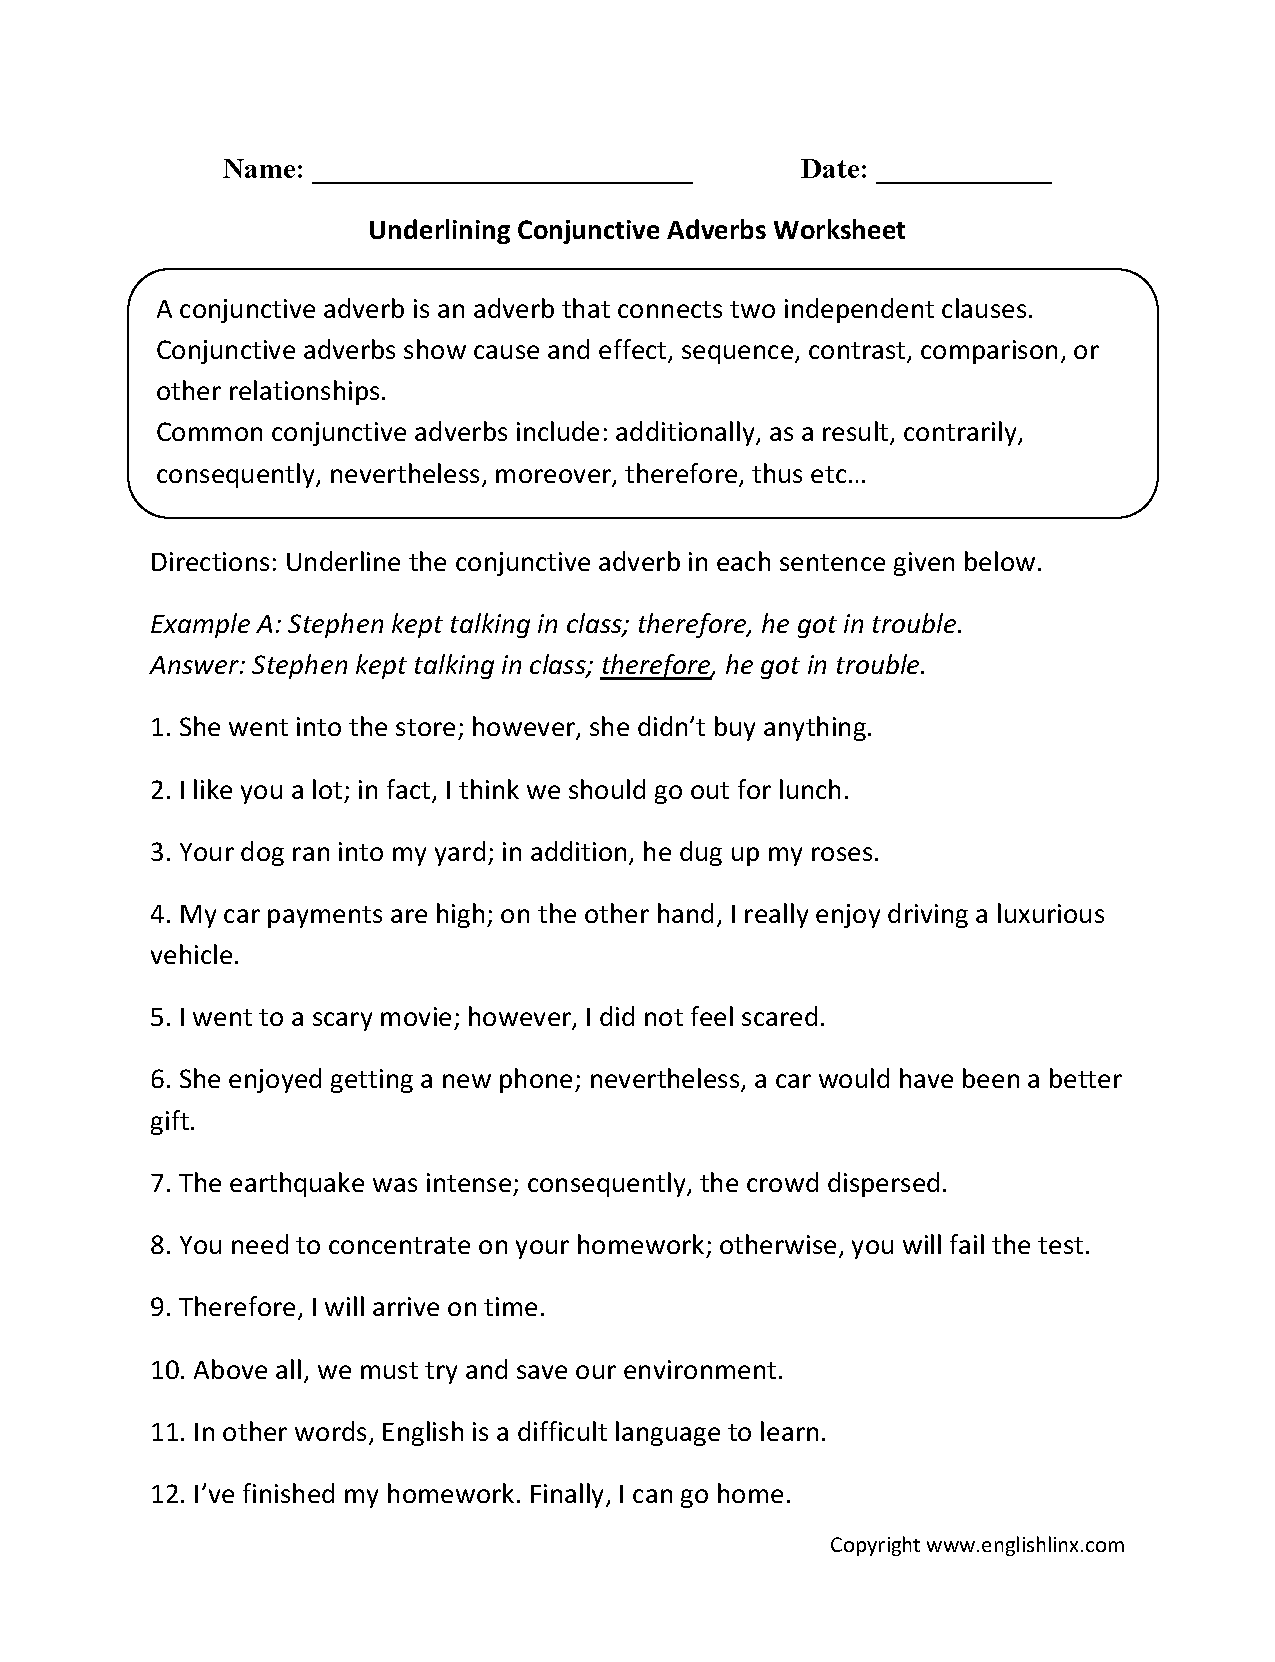 Weirdmailus  Outstanding Englishlinxcom  Conjunctions Worksheets With Fair Worksheet With Awesome Geography Worksheets Middle School Also Modern Marvels Carbon Worksheet In Addition  Ns  Worksheets And Rd Grade Timeline Worksheets As Well As Ox Cart Man Worksheets Additionally Tracing Number  Worksheets From Englishlinxcom With Weirdmailus  Fair Englishlinxcom  Conjunctions Worksheets With Awesome Worksheet And Outstanding Geography Worksheets Middle School Also Modern Marvels Carbon Worksheet In Addition  Ns  Worksheets From Englishlinxcom